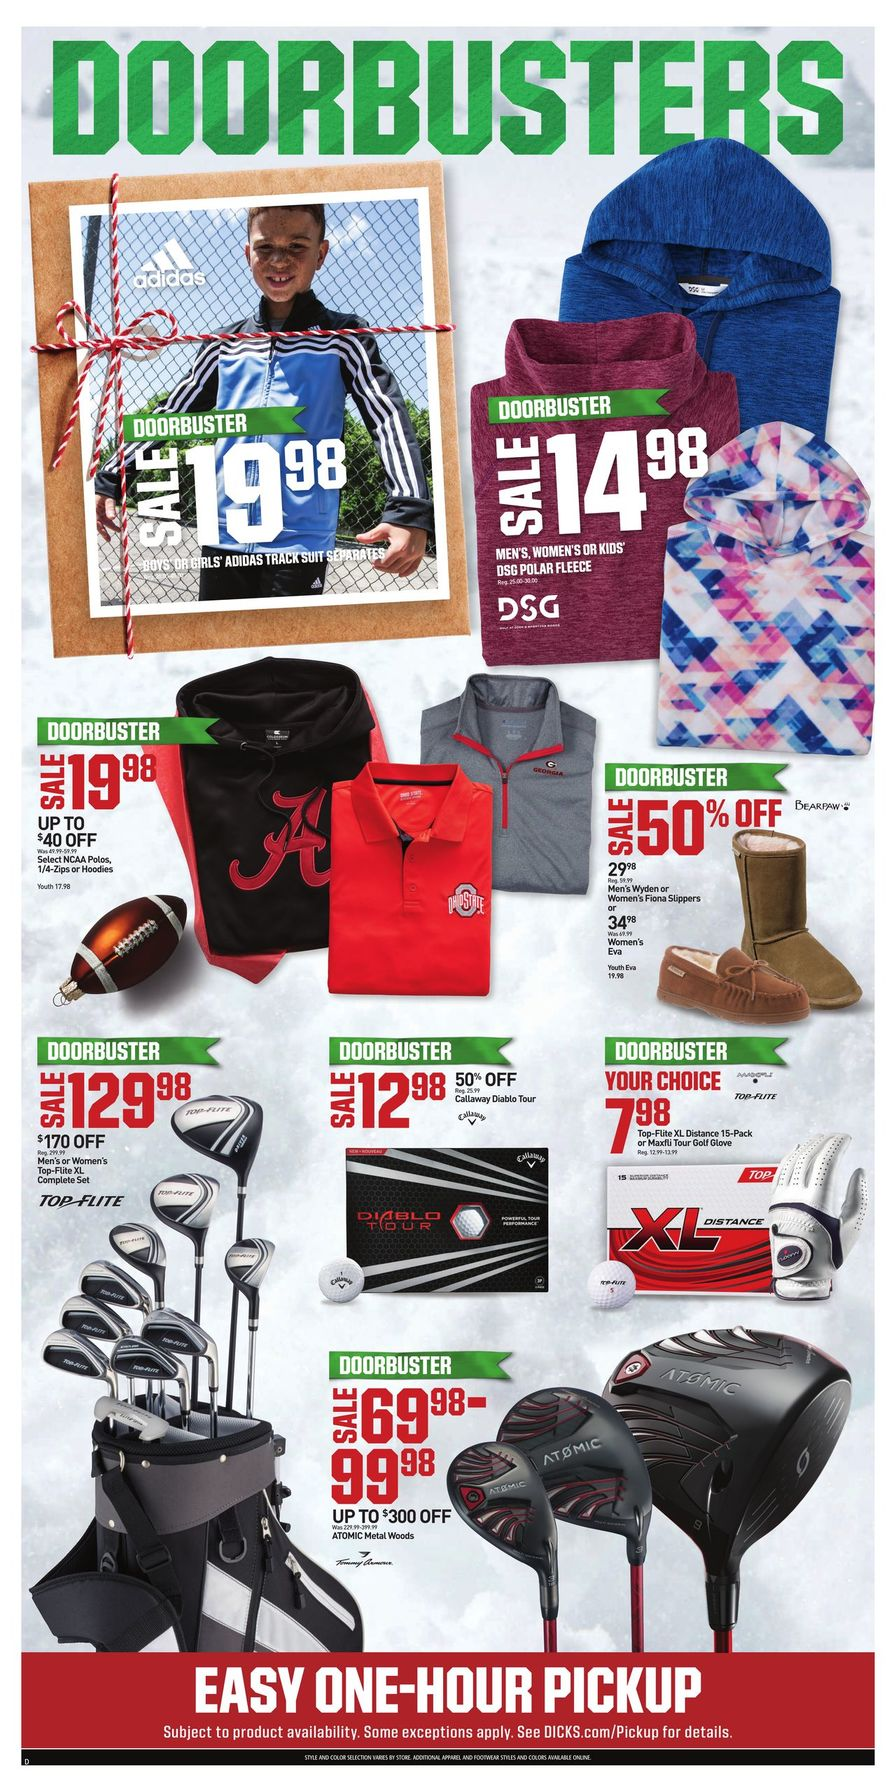 Dick's Sporting Goods Black Friday 2019 Page 2